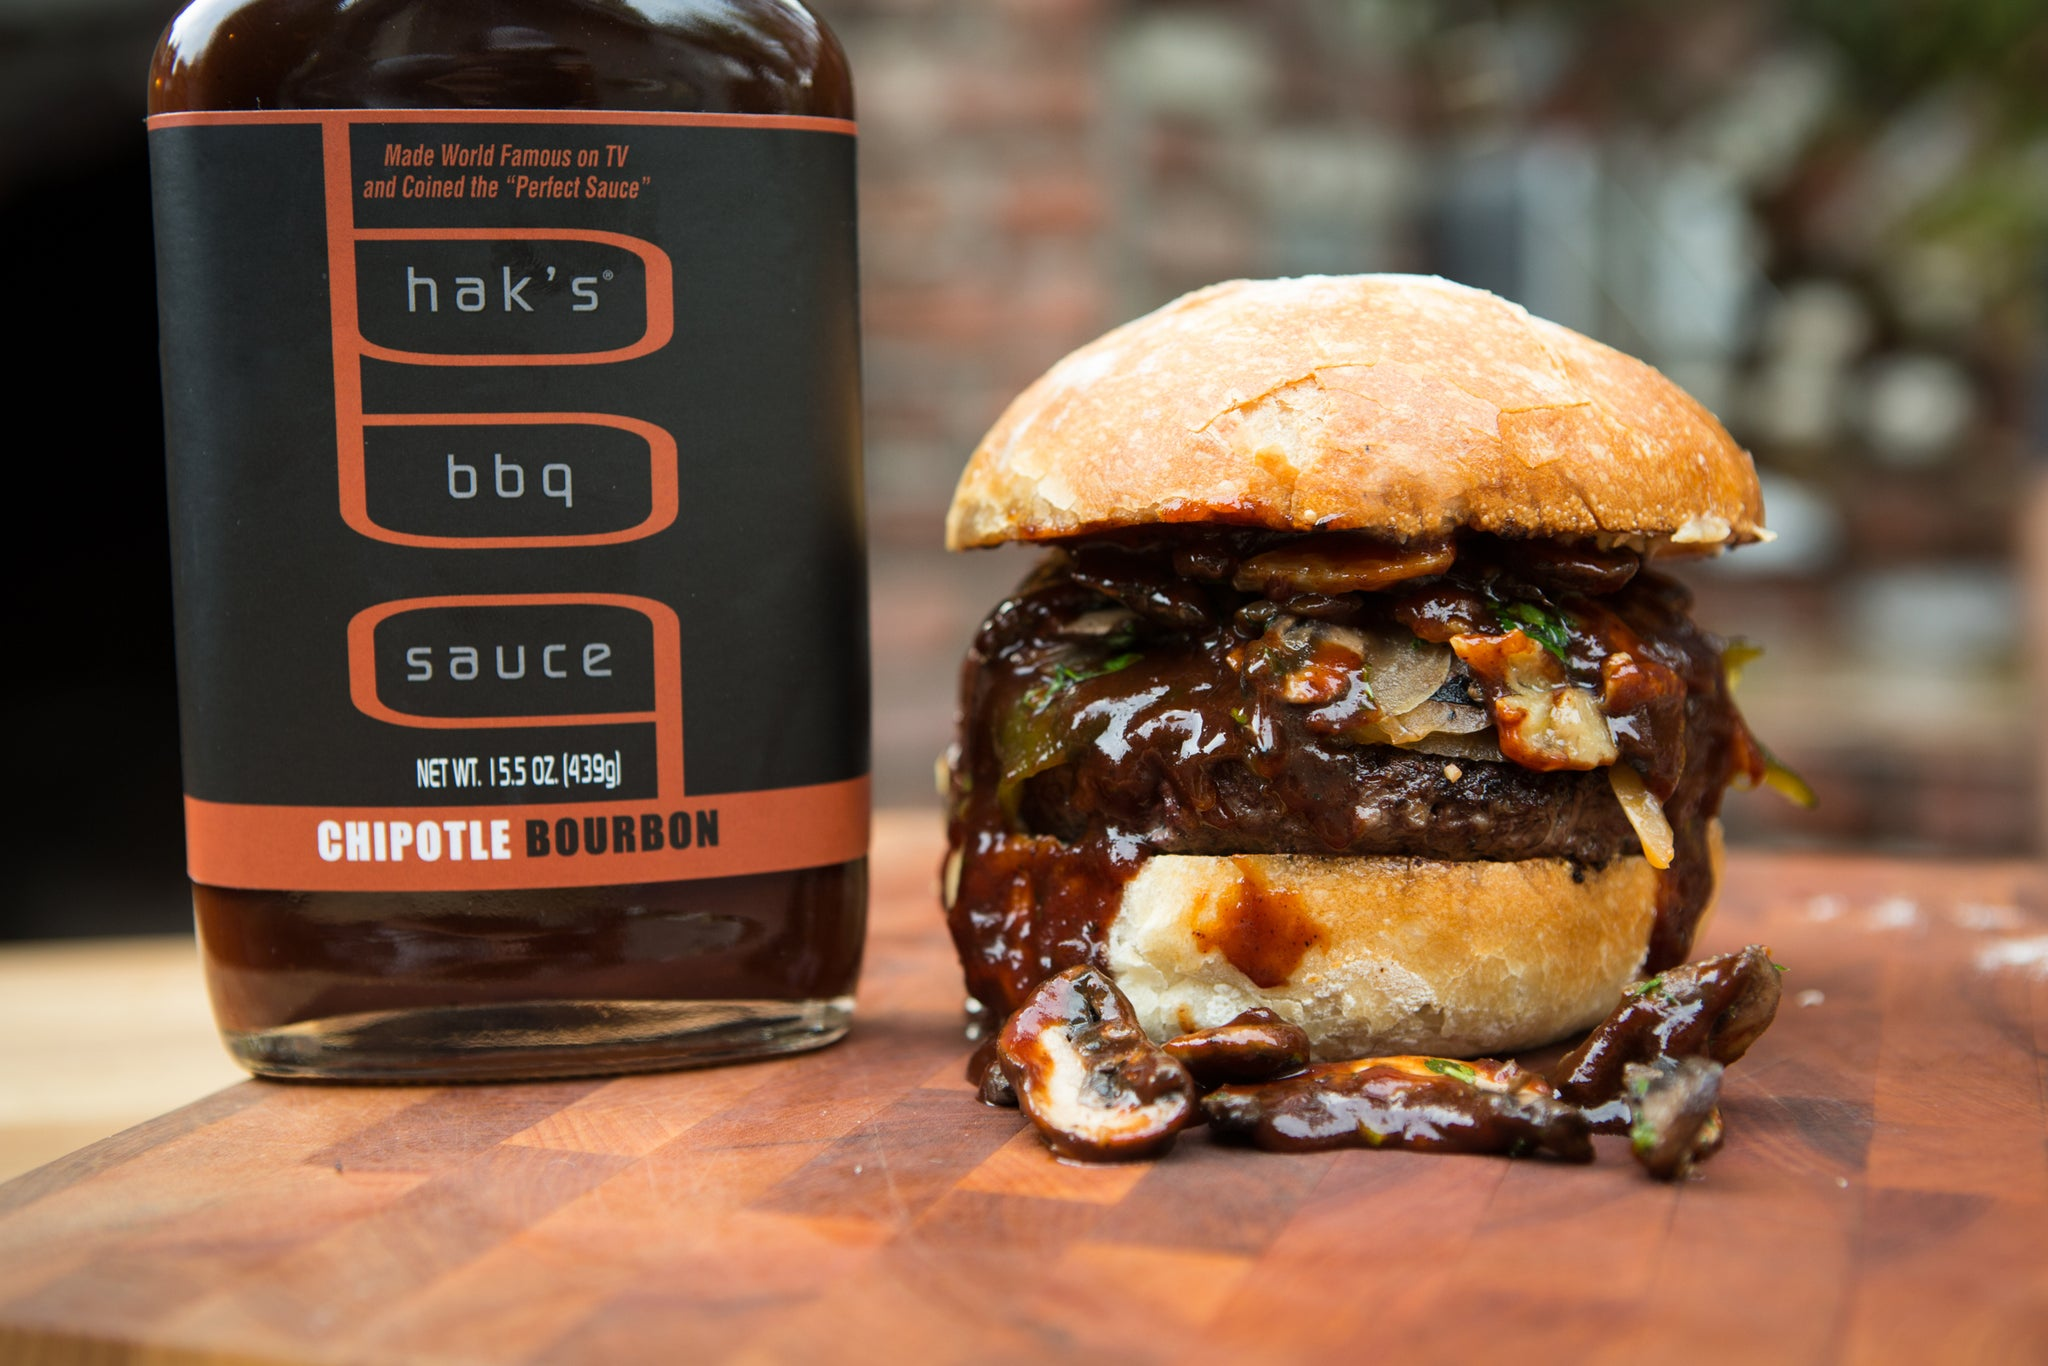 Chipotle Bourbon Tailgater Burger